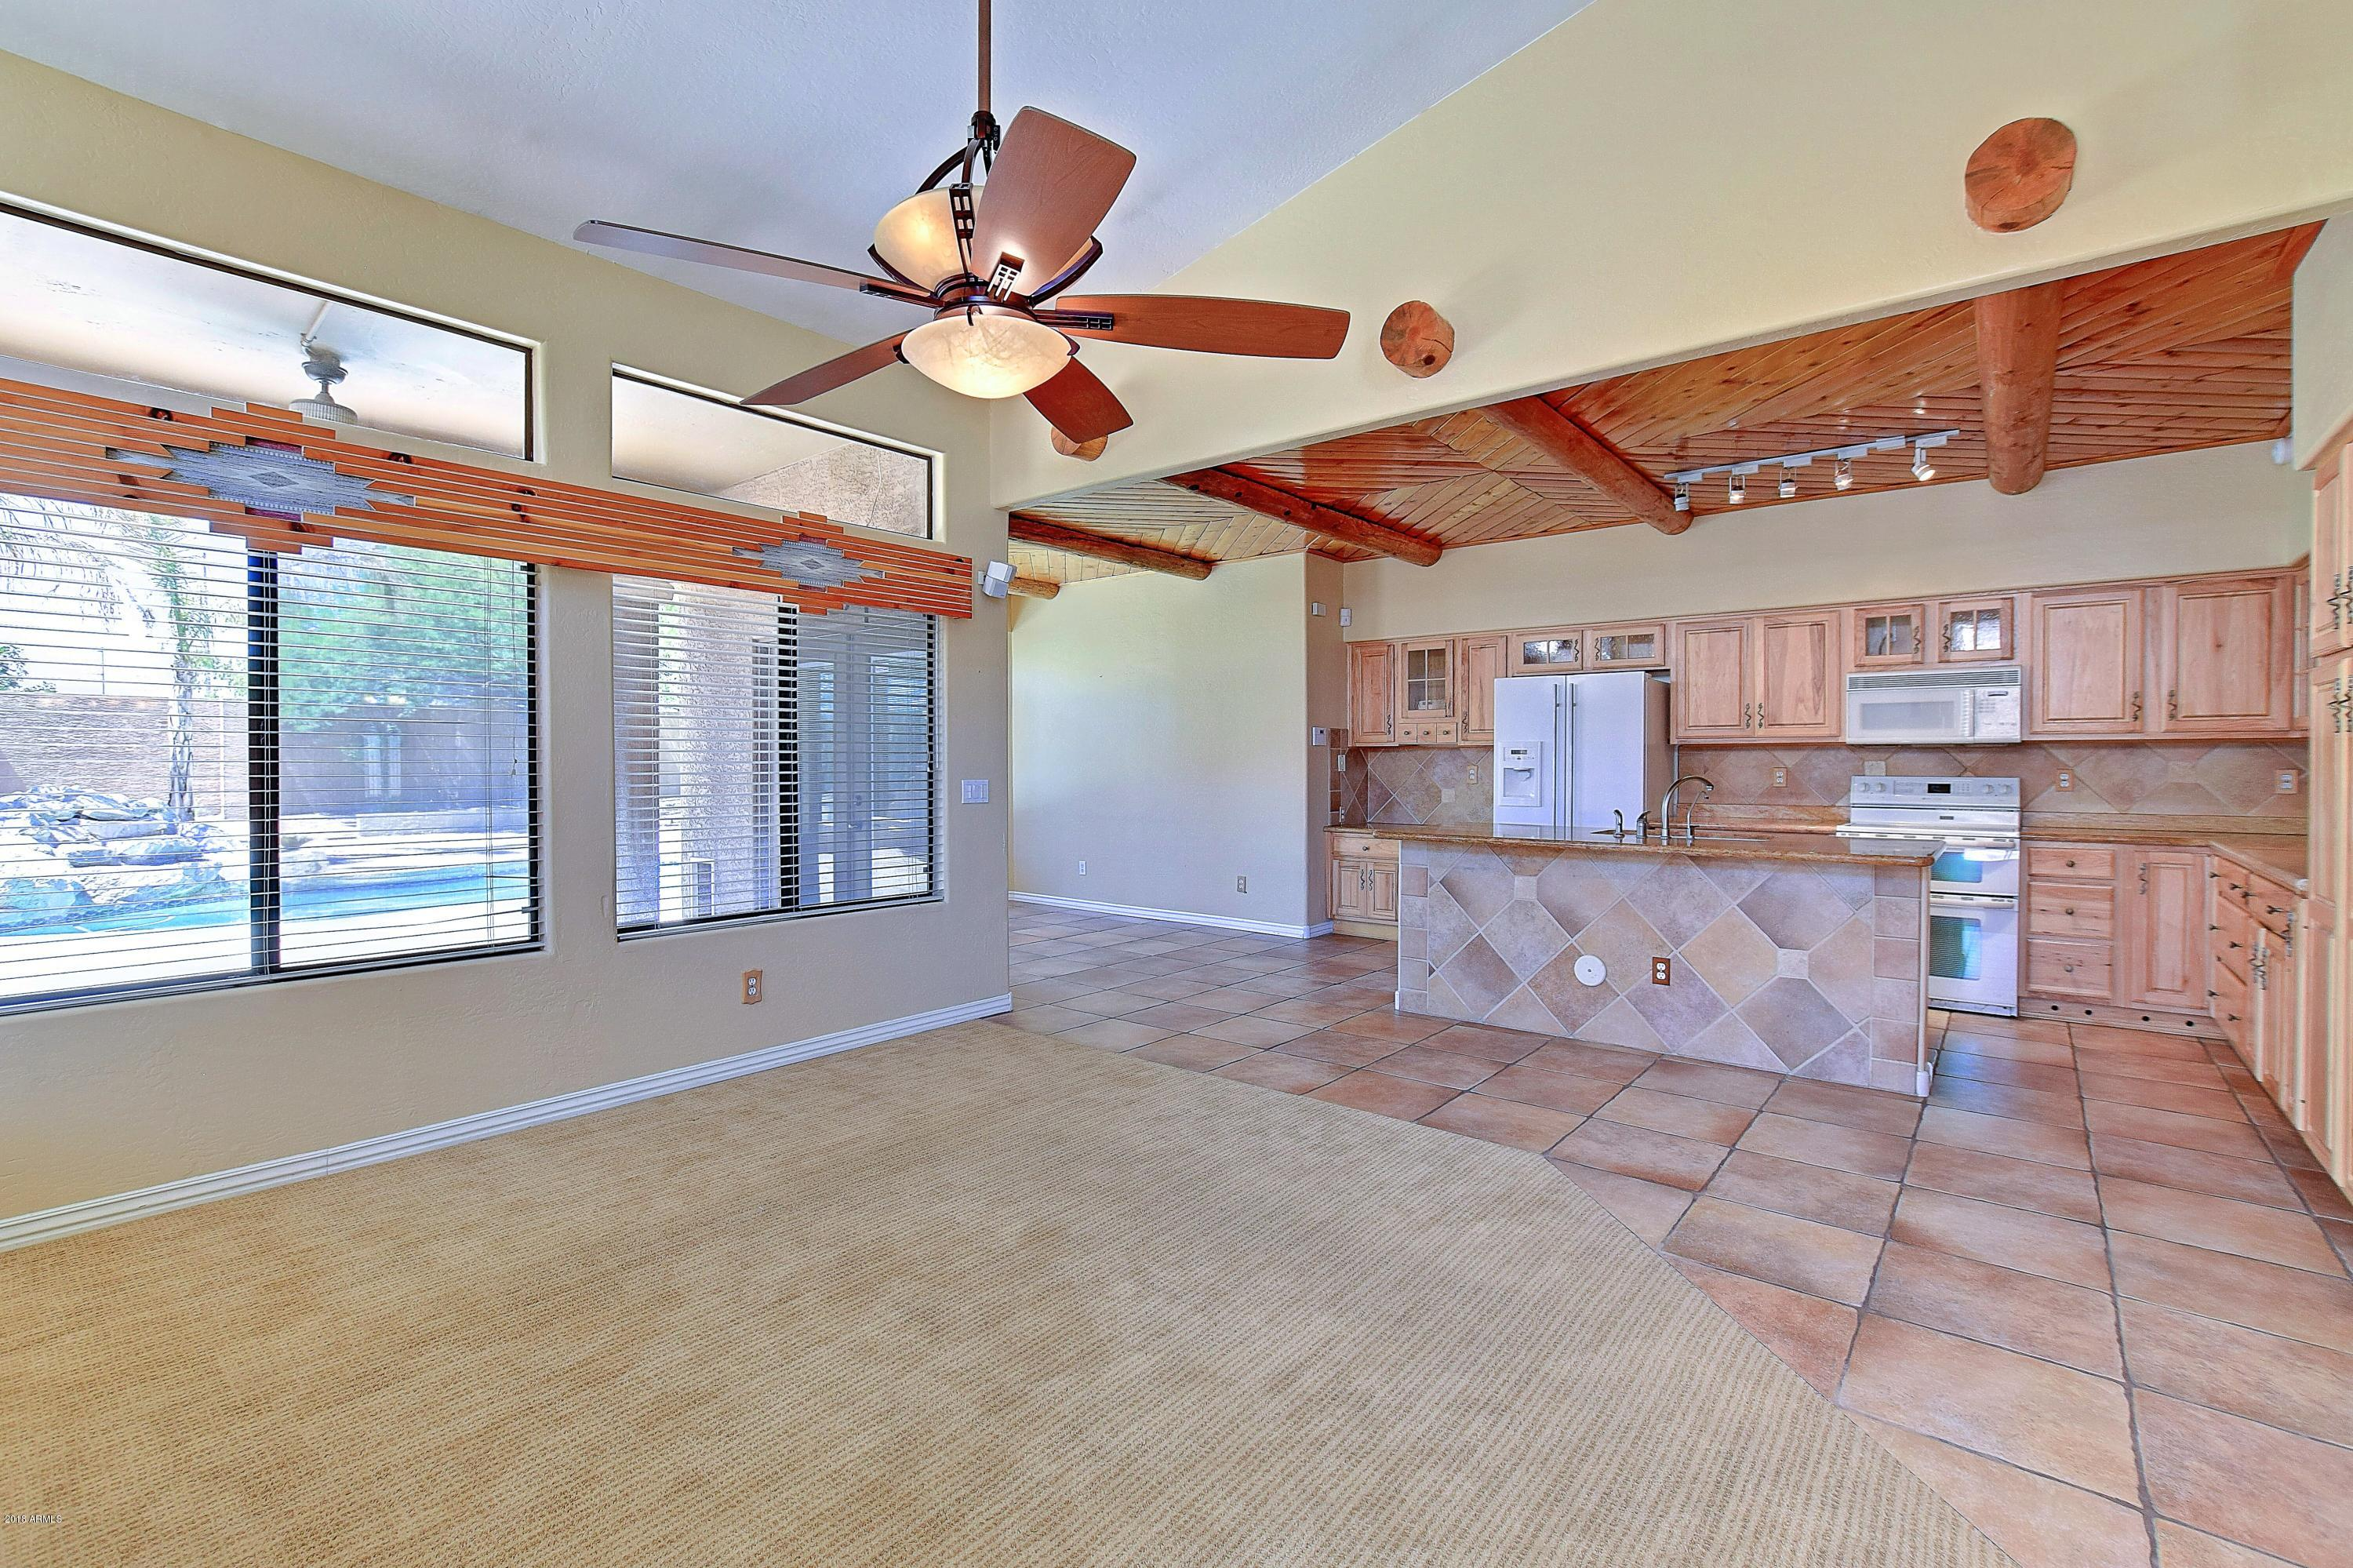 7050 S HEATHER Drive, Tempe, AZ 85283